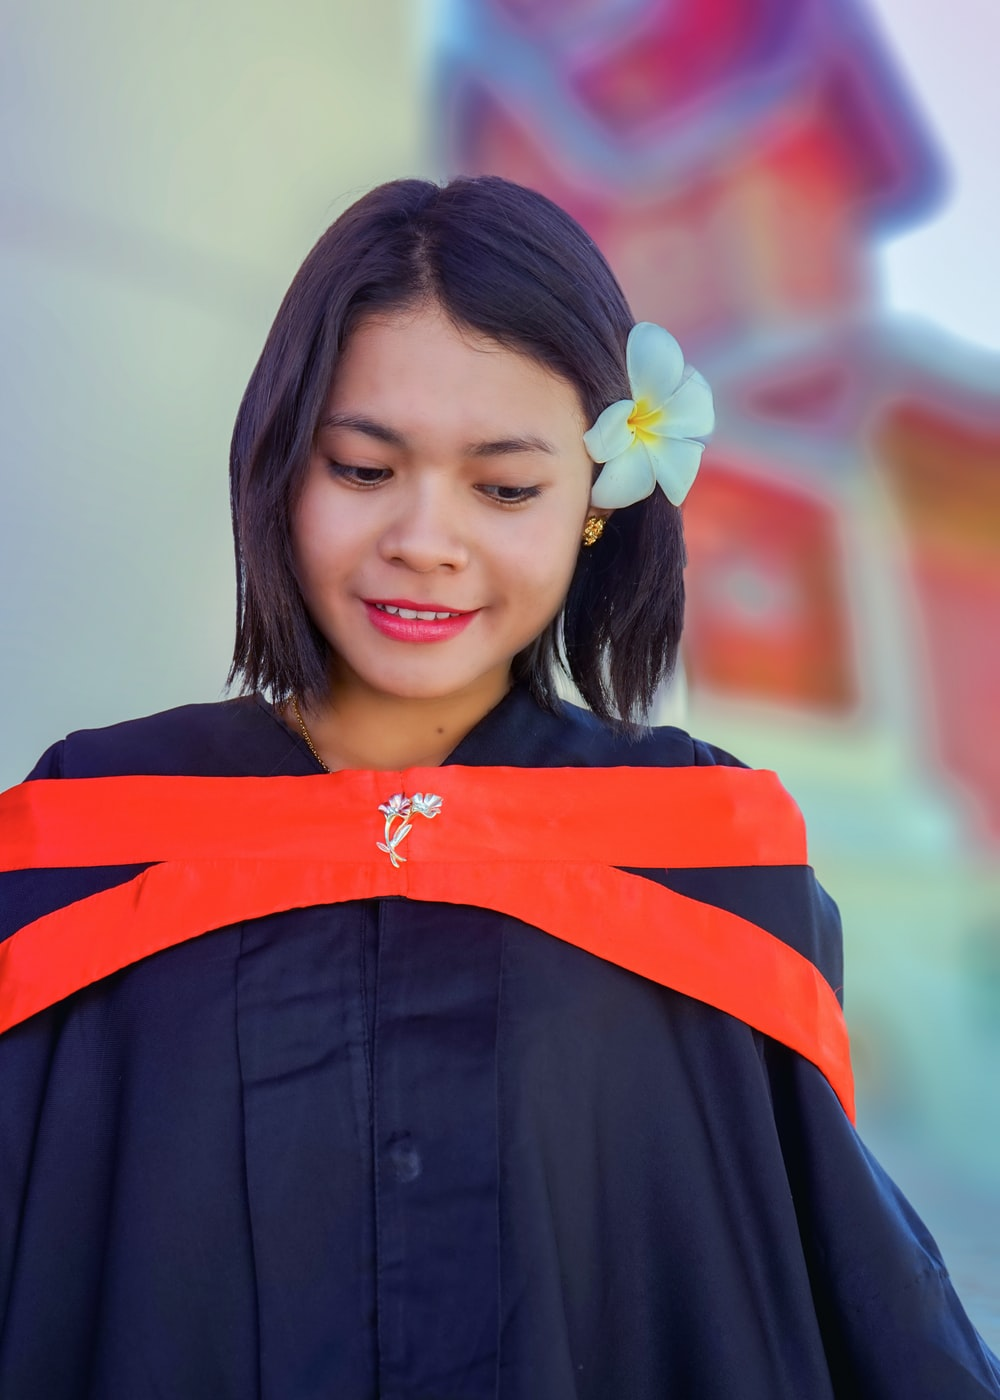 unknown person wearing academic dress taking selfie outdoors